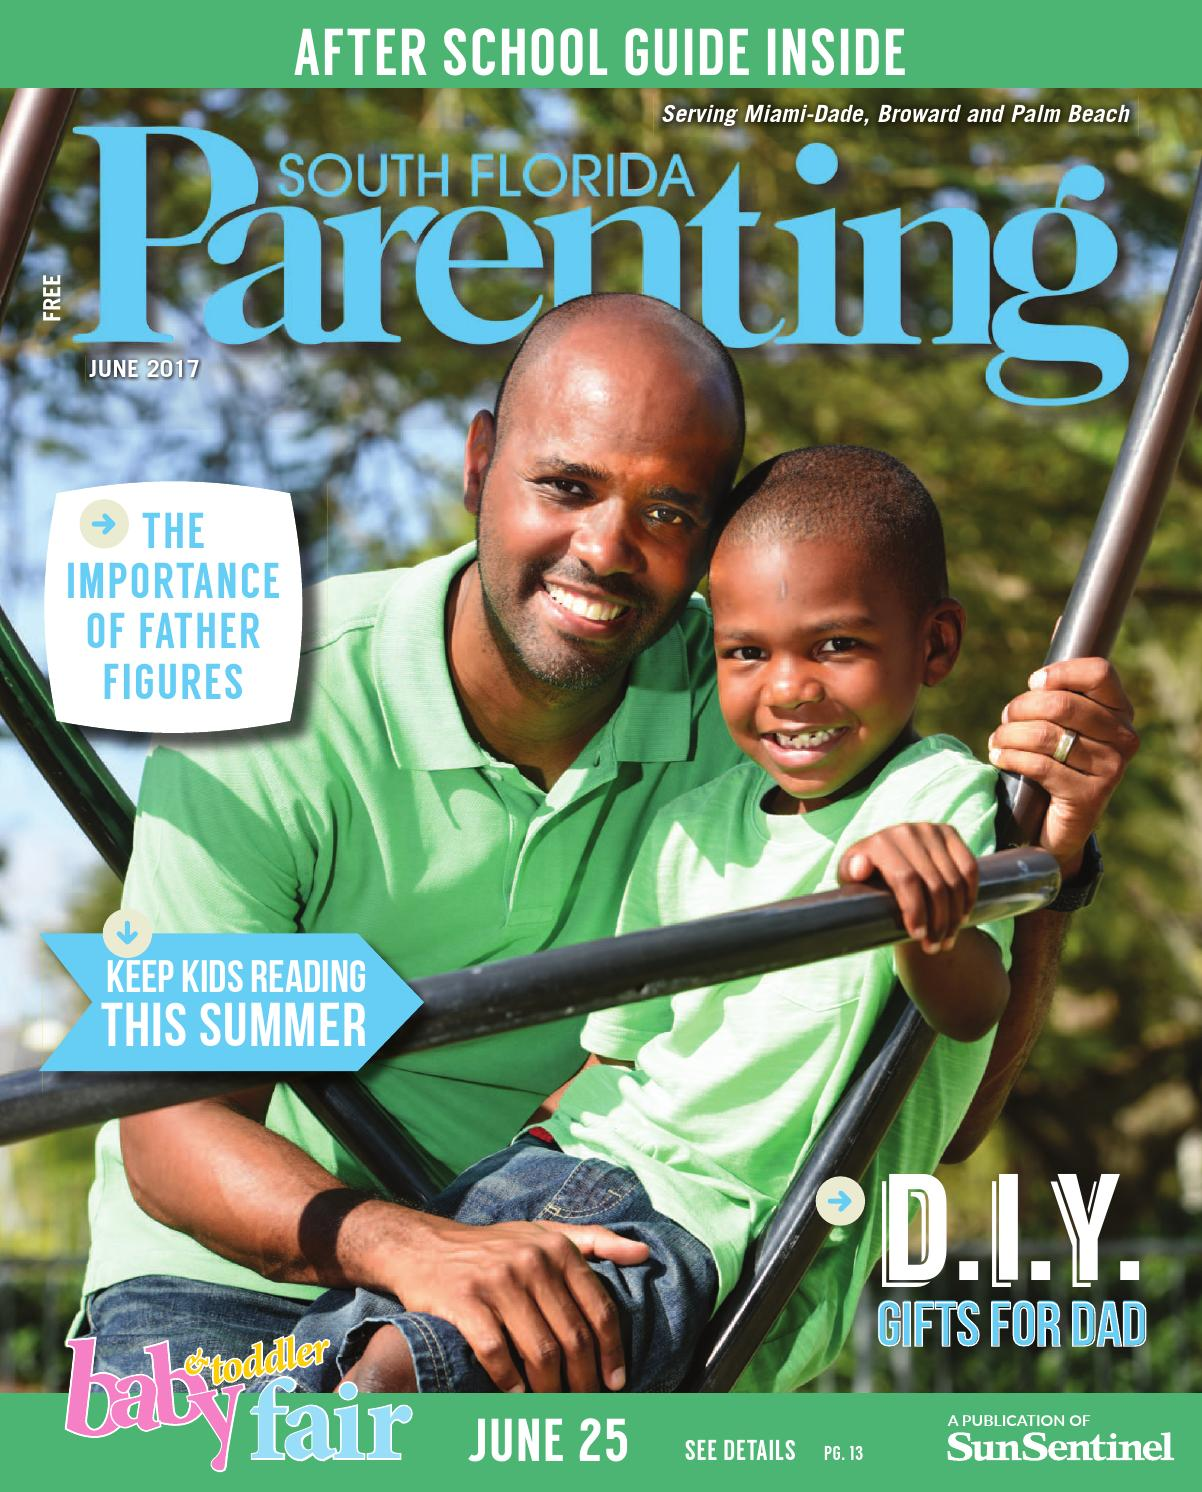 South Florida Parenting June 2017 by Forum Publishing Group - issuu